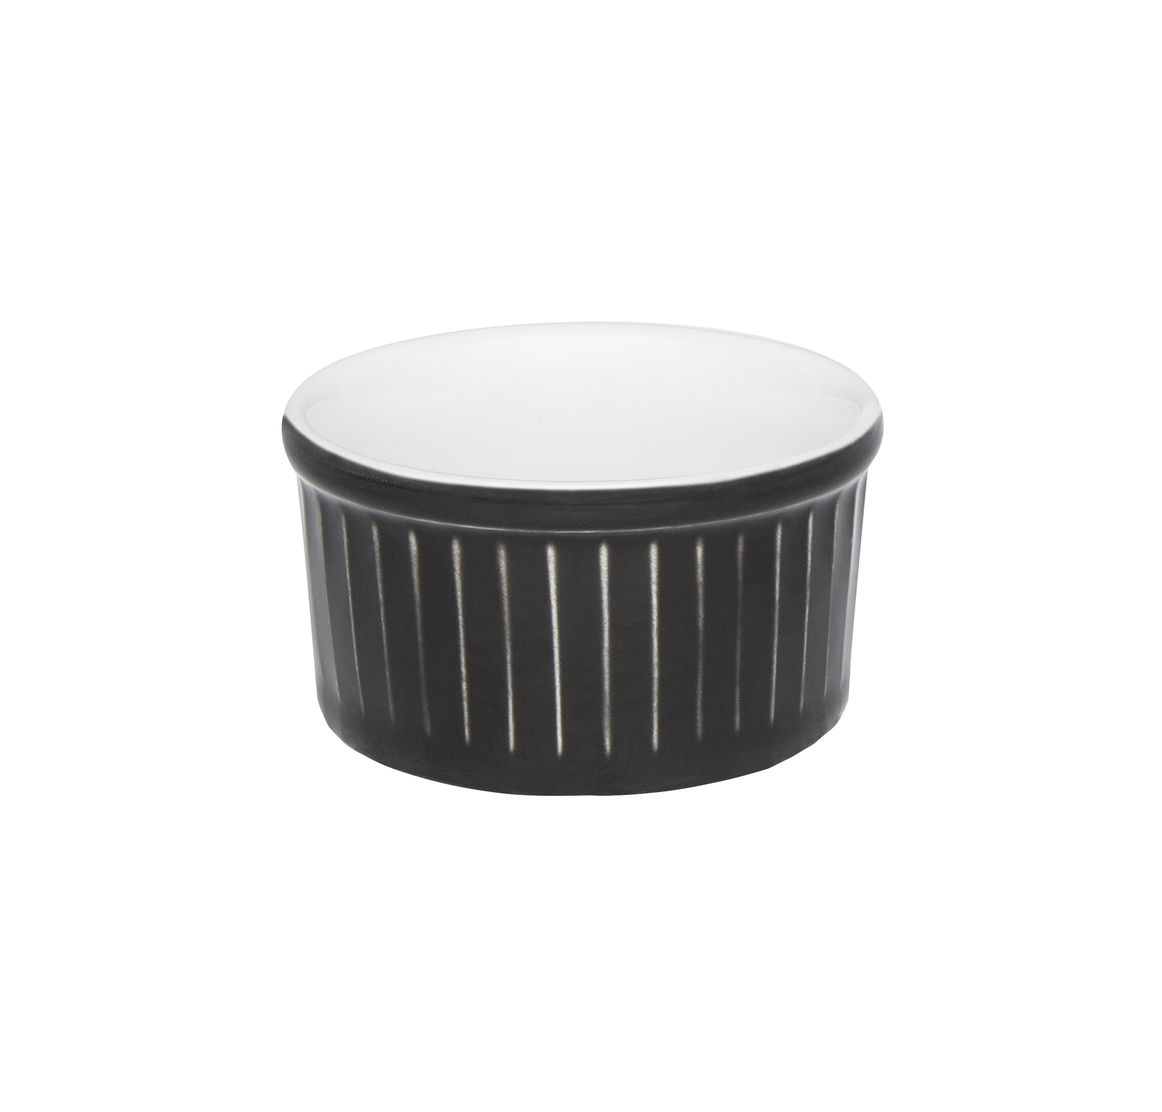 Tigela Ramequin 8X4Cm 100Ml - Branco/Preto - Oxford Cookware